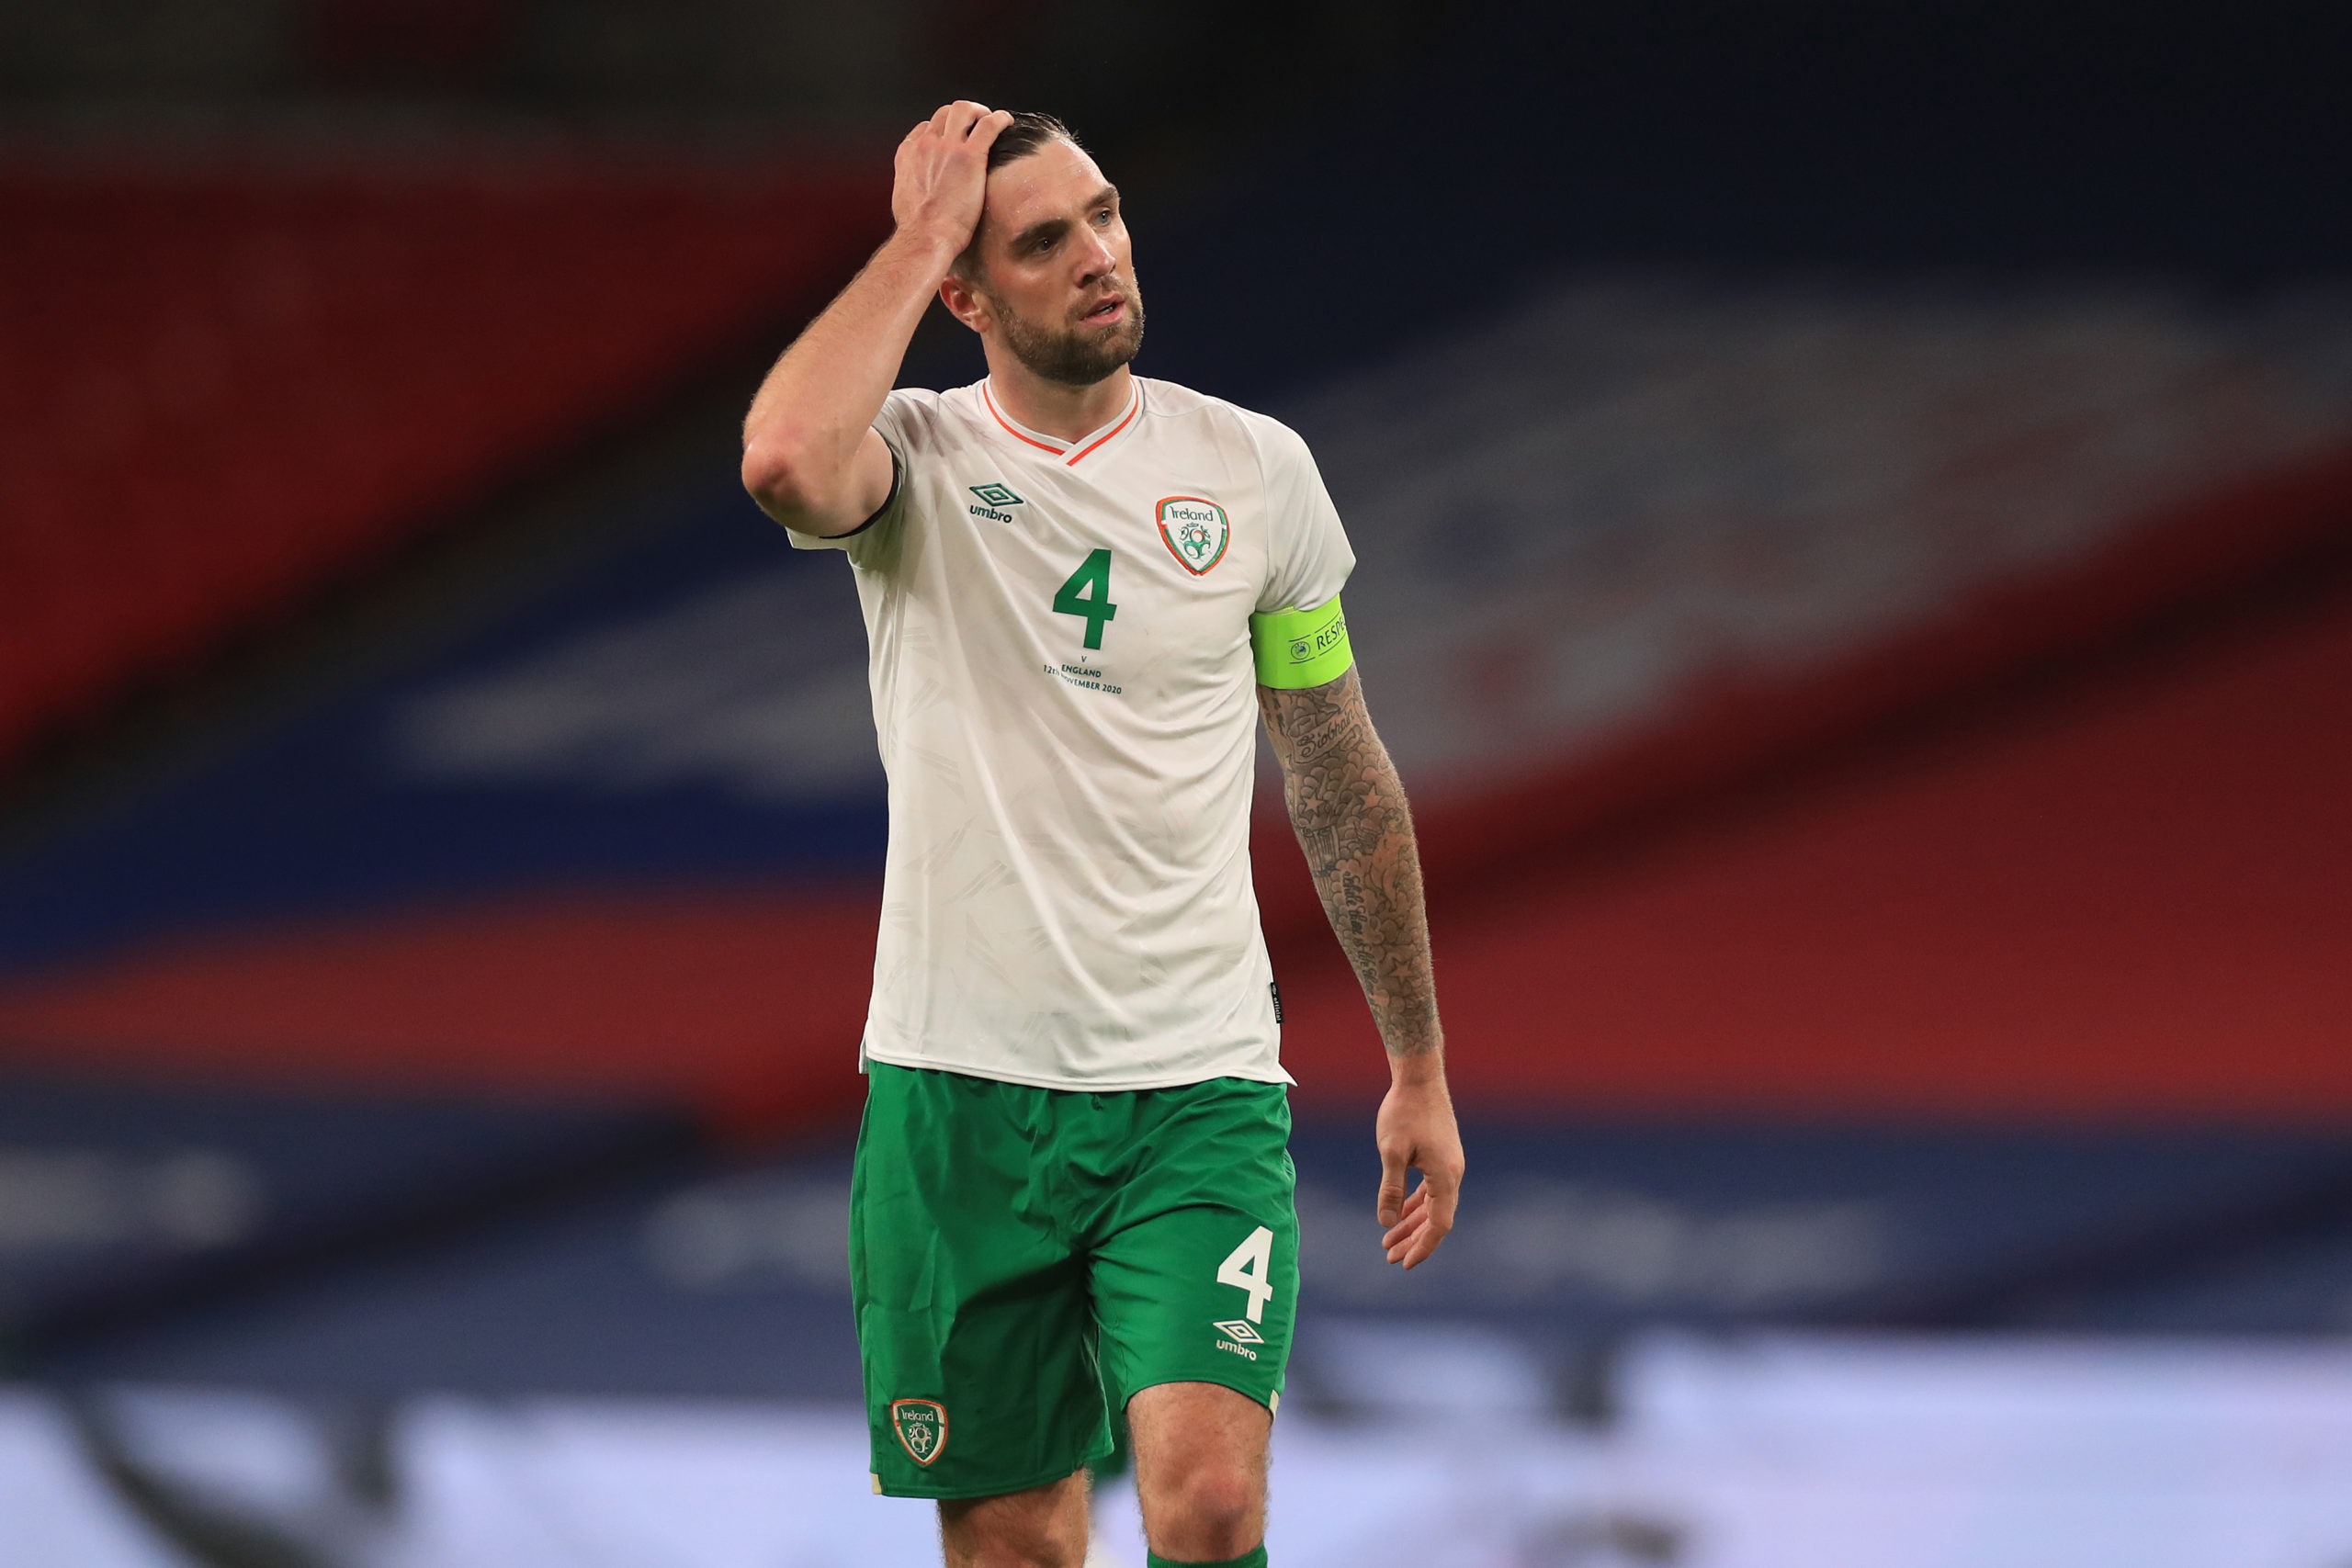 Celtic centre-back Shane Duffy has had a tough time of it